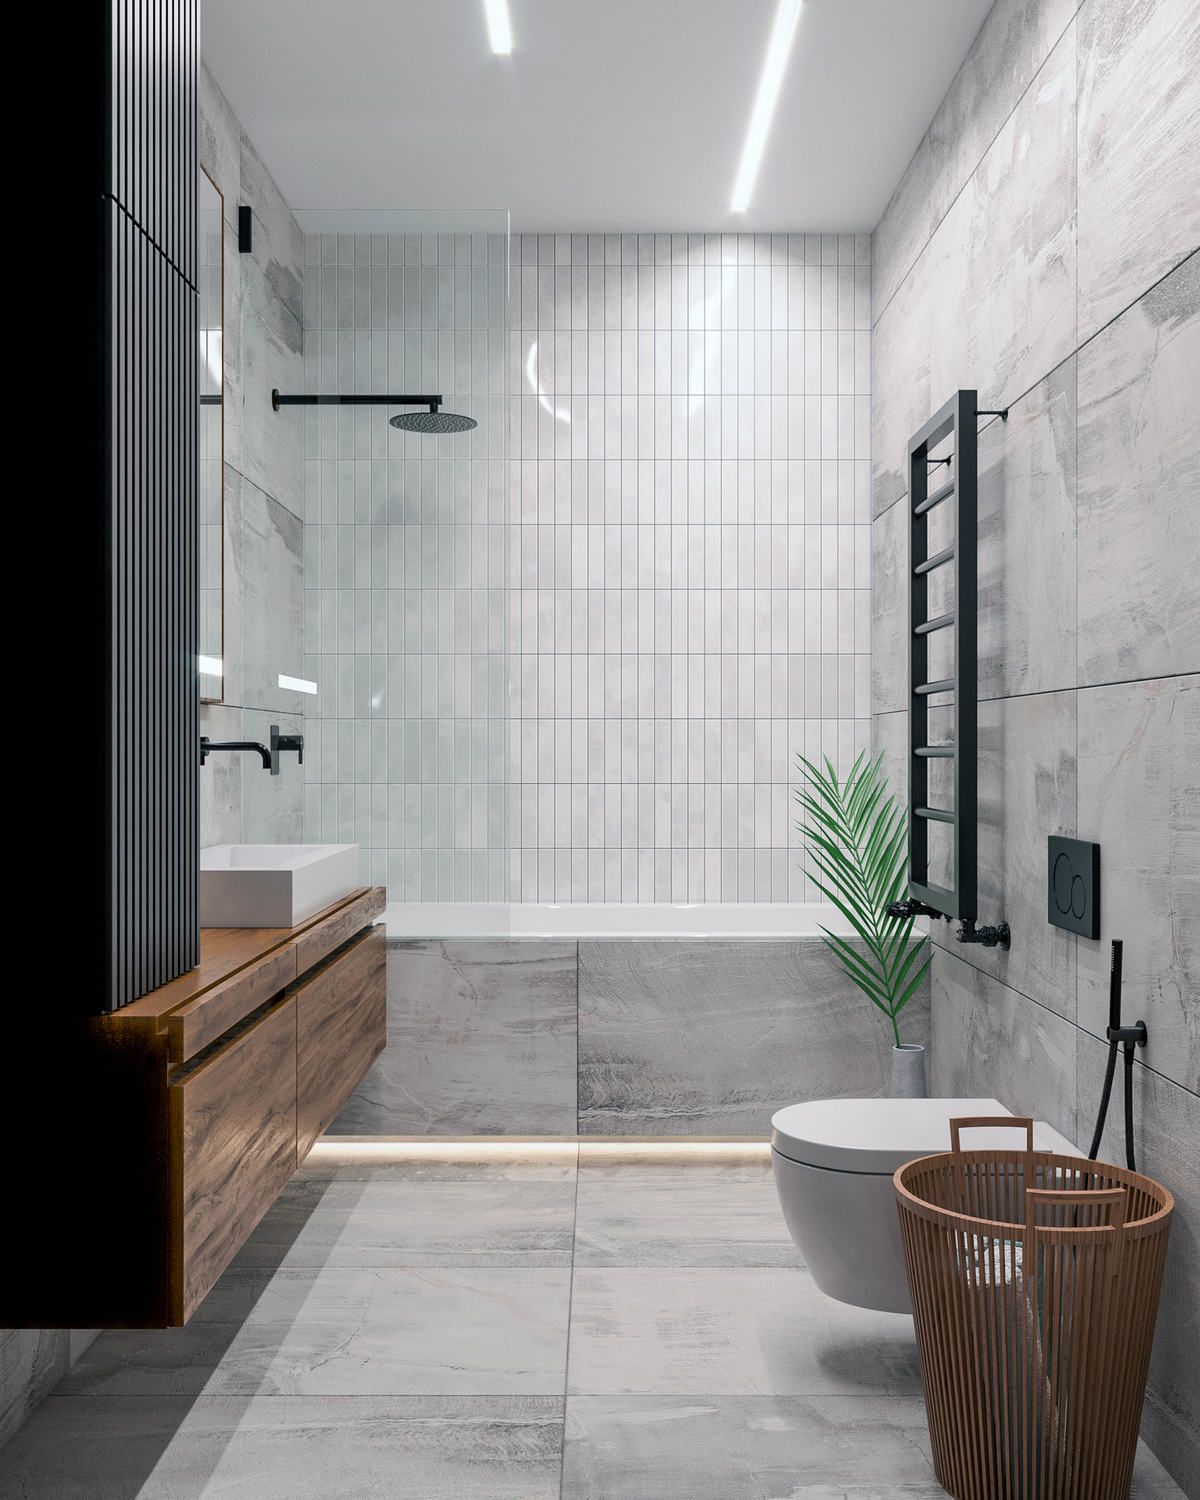 Large tiles horizontally and smaller, central …